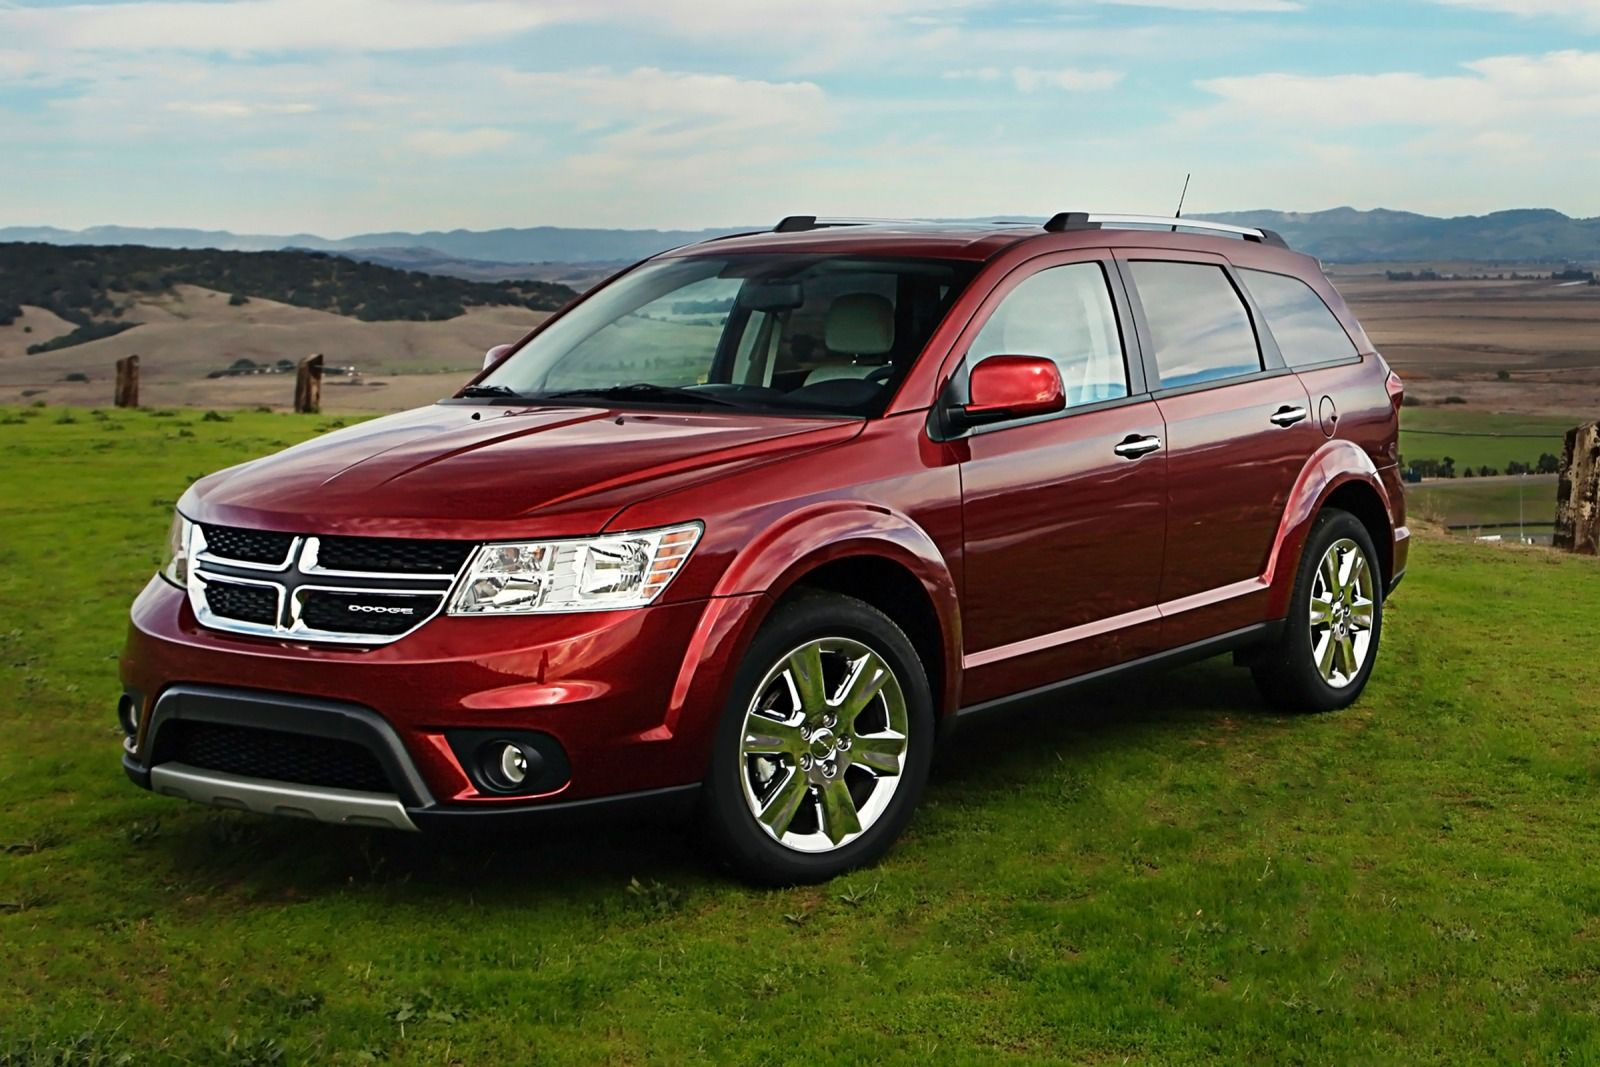 2015 dodge journey information and photos zombiedrive. Black Bedroom Furniture Sets. Home Design Ideas